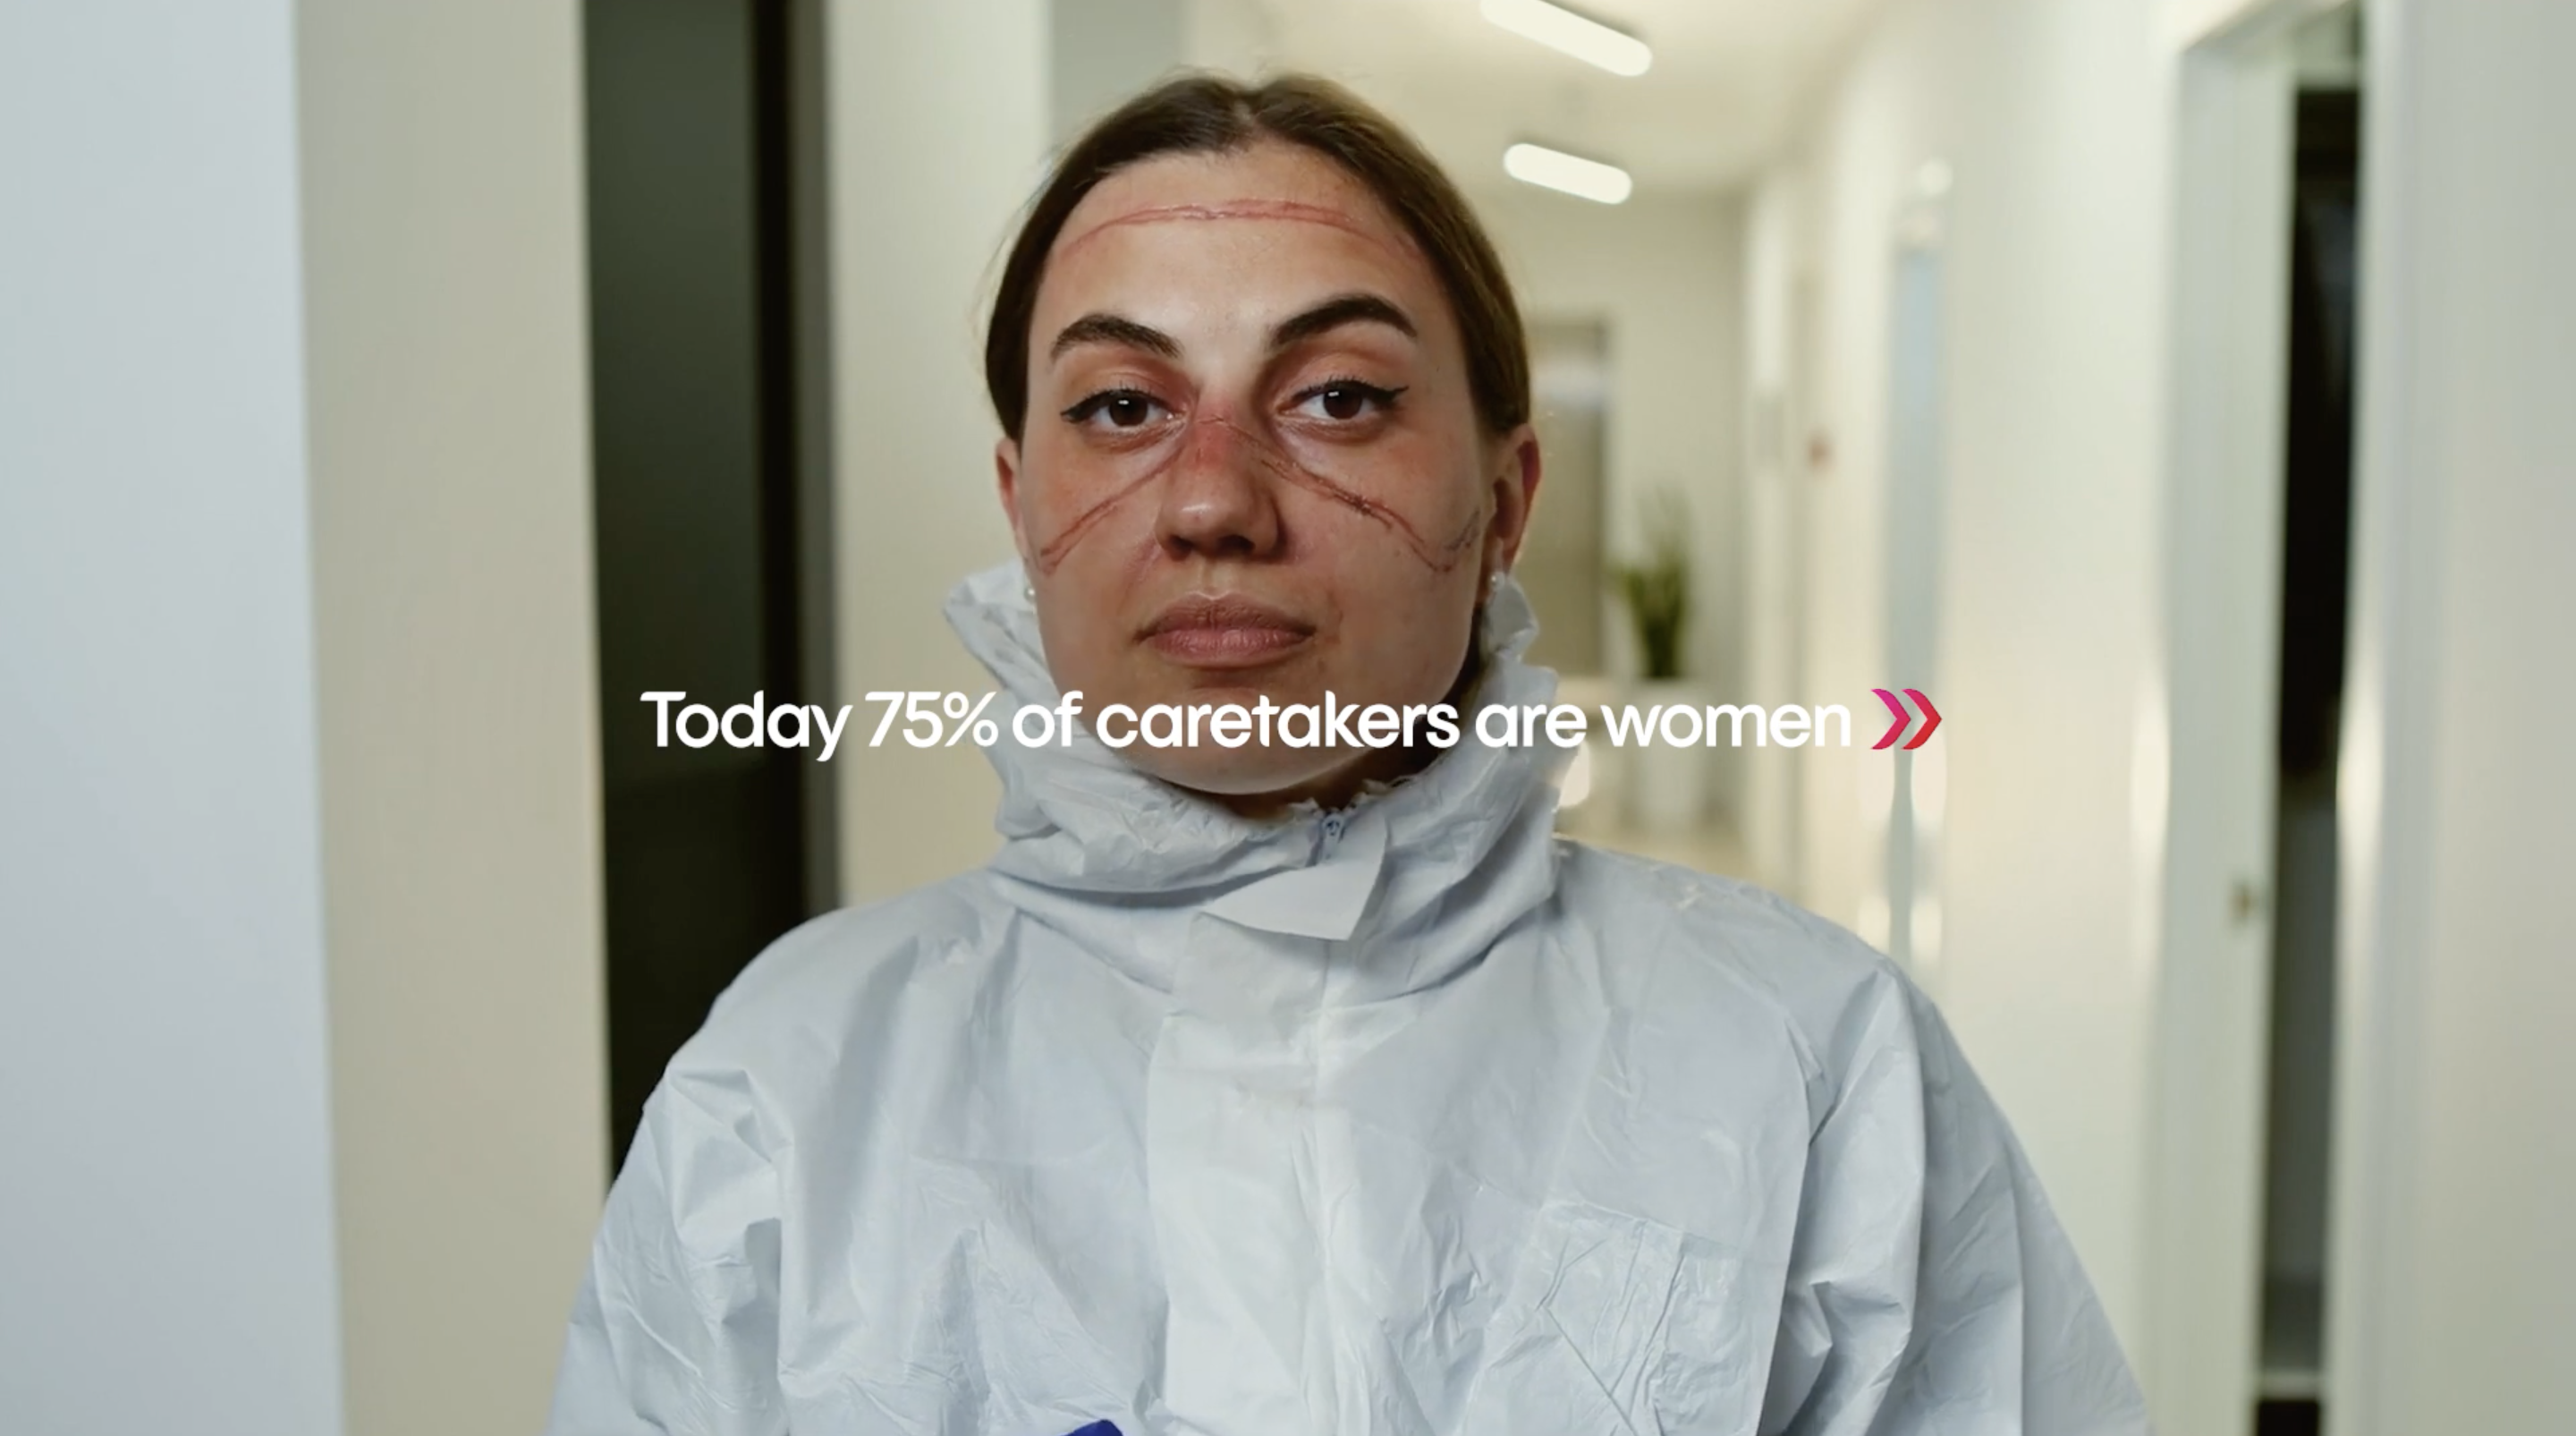 Kotex aims to remove the shame and myths surrounding periods.